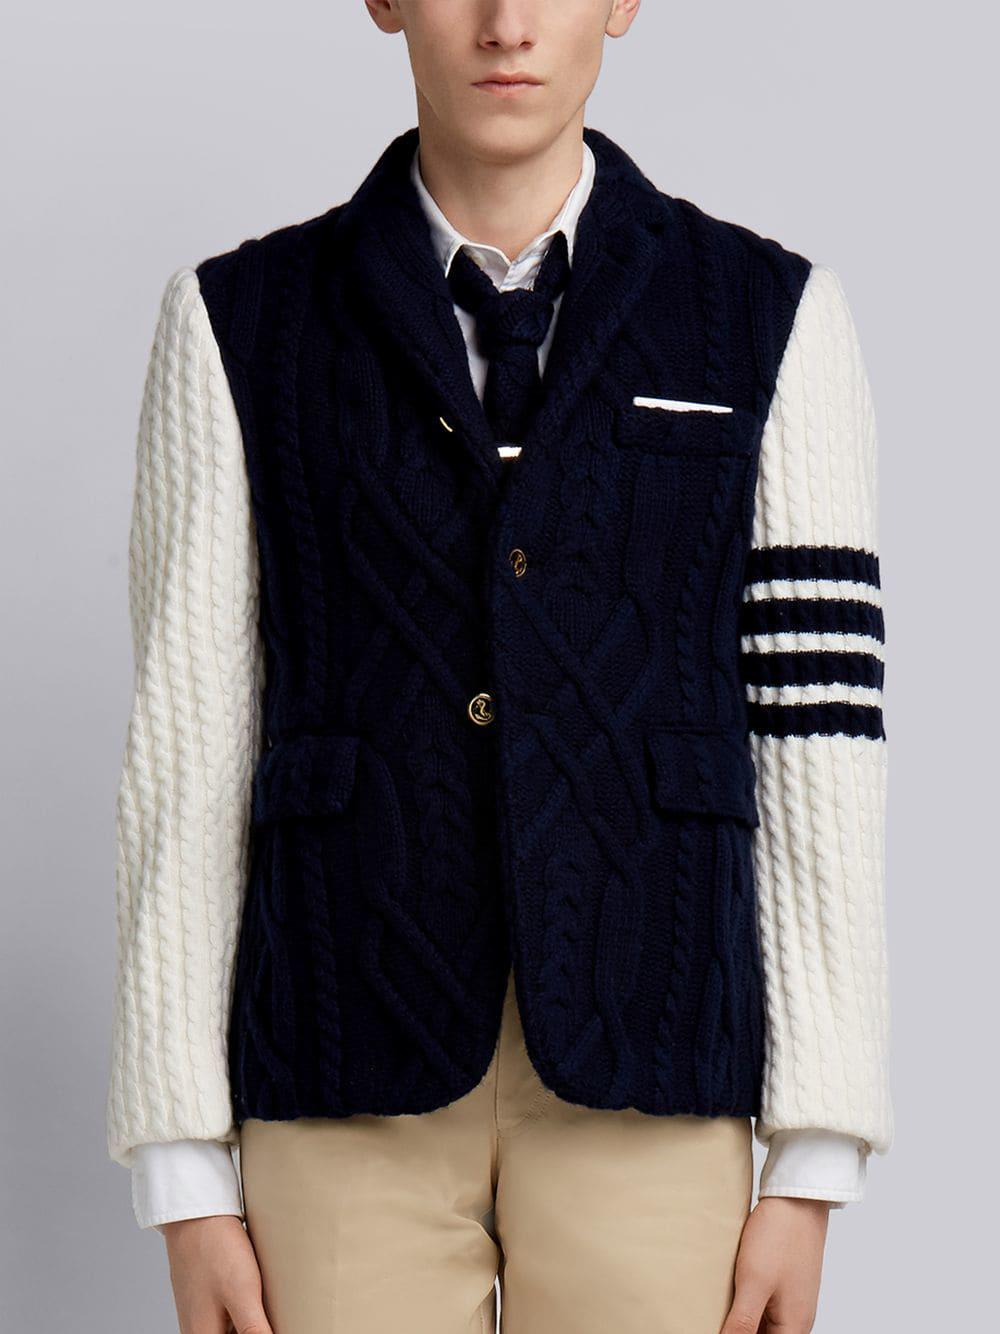 Thom Browne 4-Bar Knit Sleeve Sport Coat - Blue